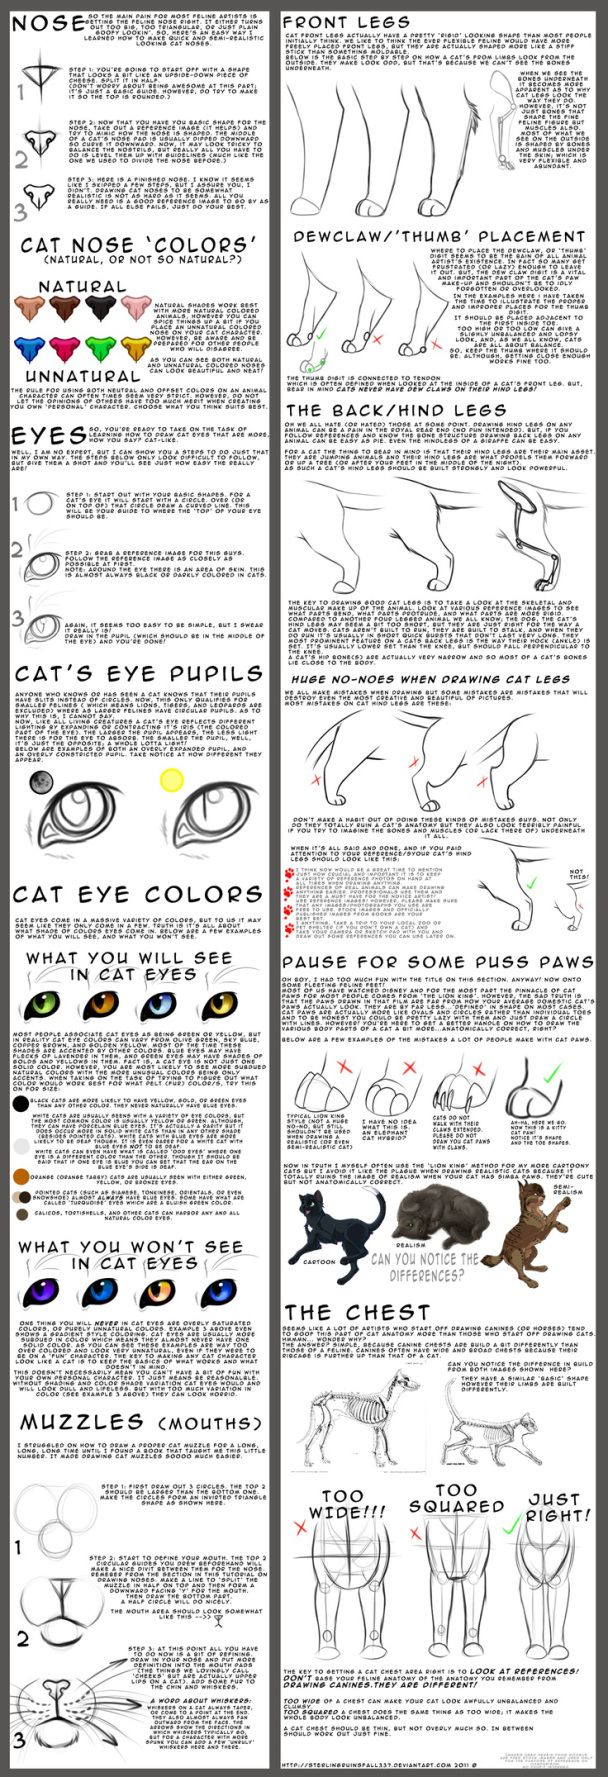 Tutorial on how to draw a cat - with special detail on how to correctly draw the chest and legs.